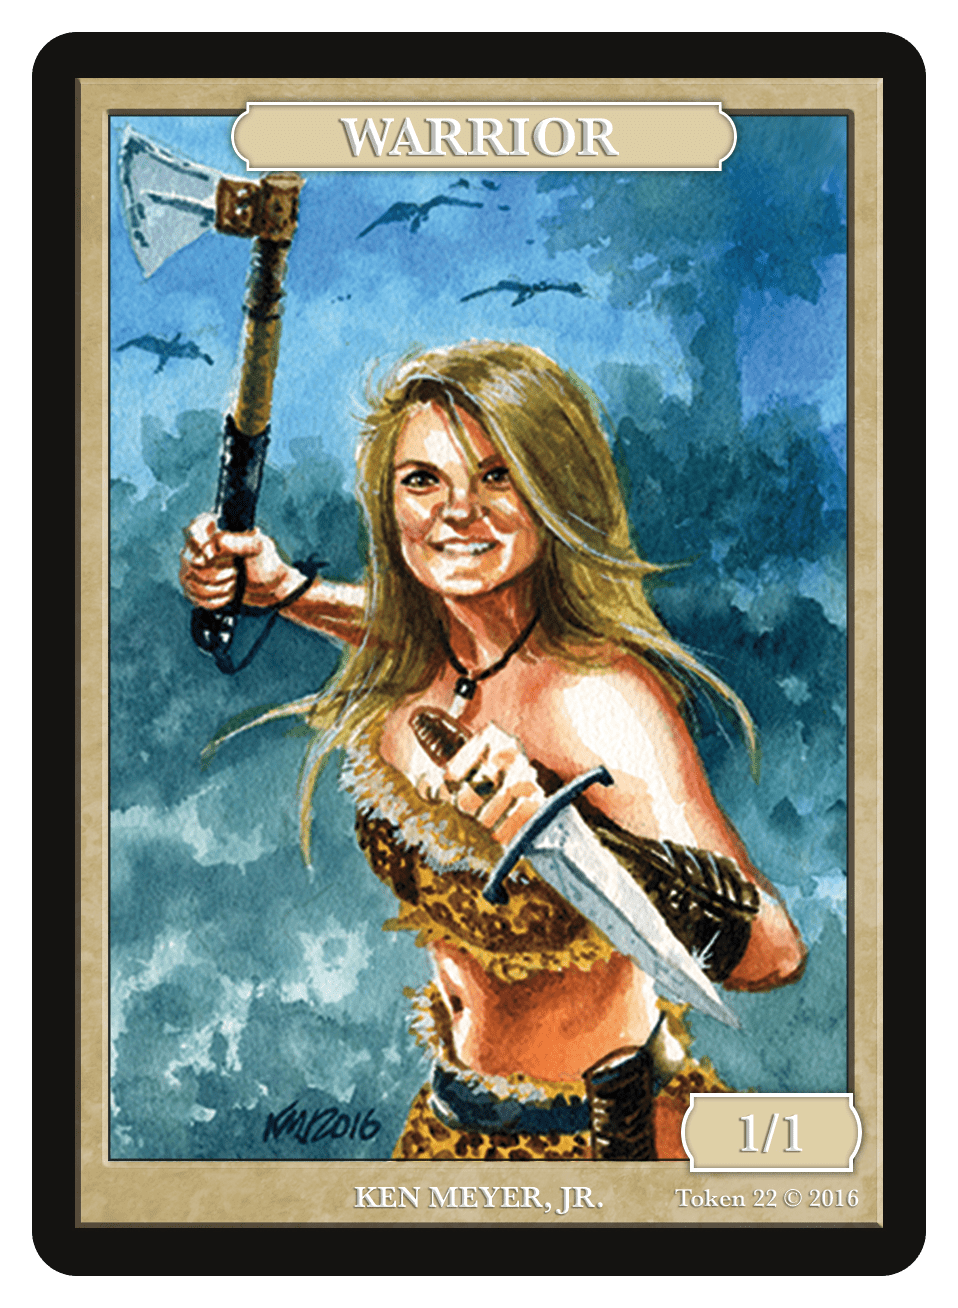 Warrior Token (1/1) by Ken Meyer Jr.